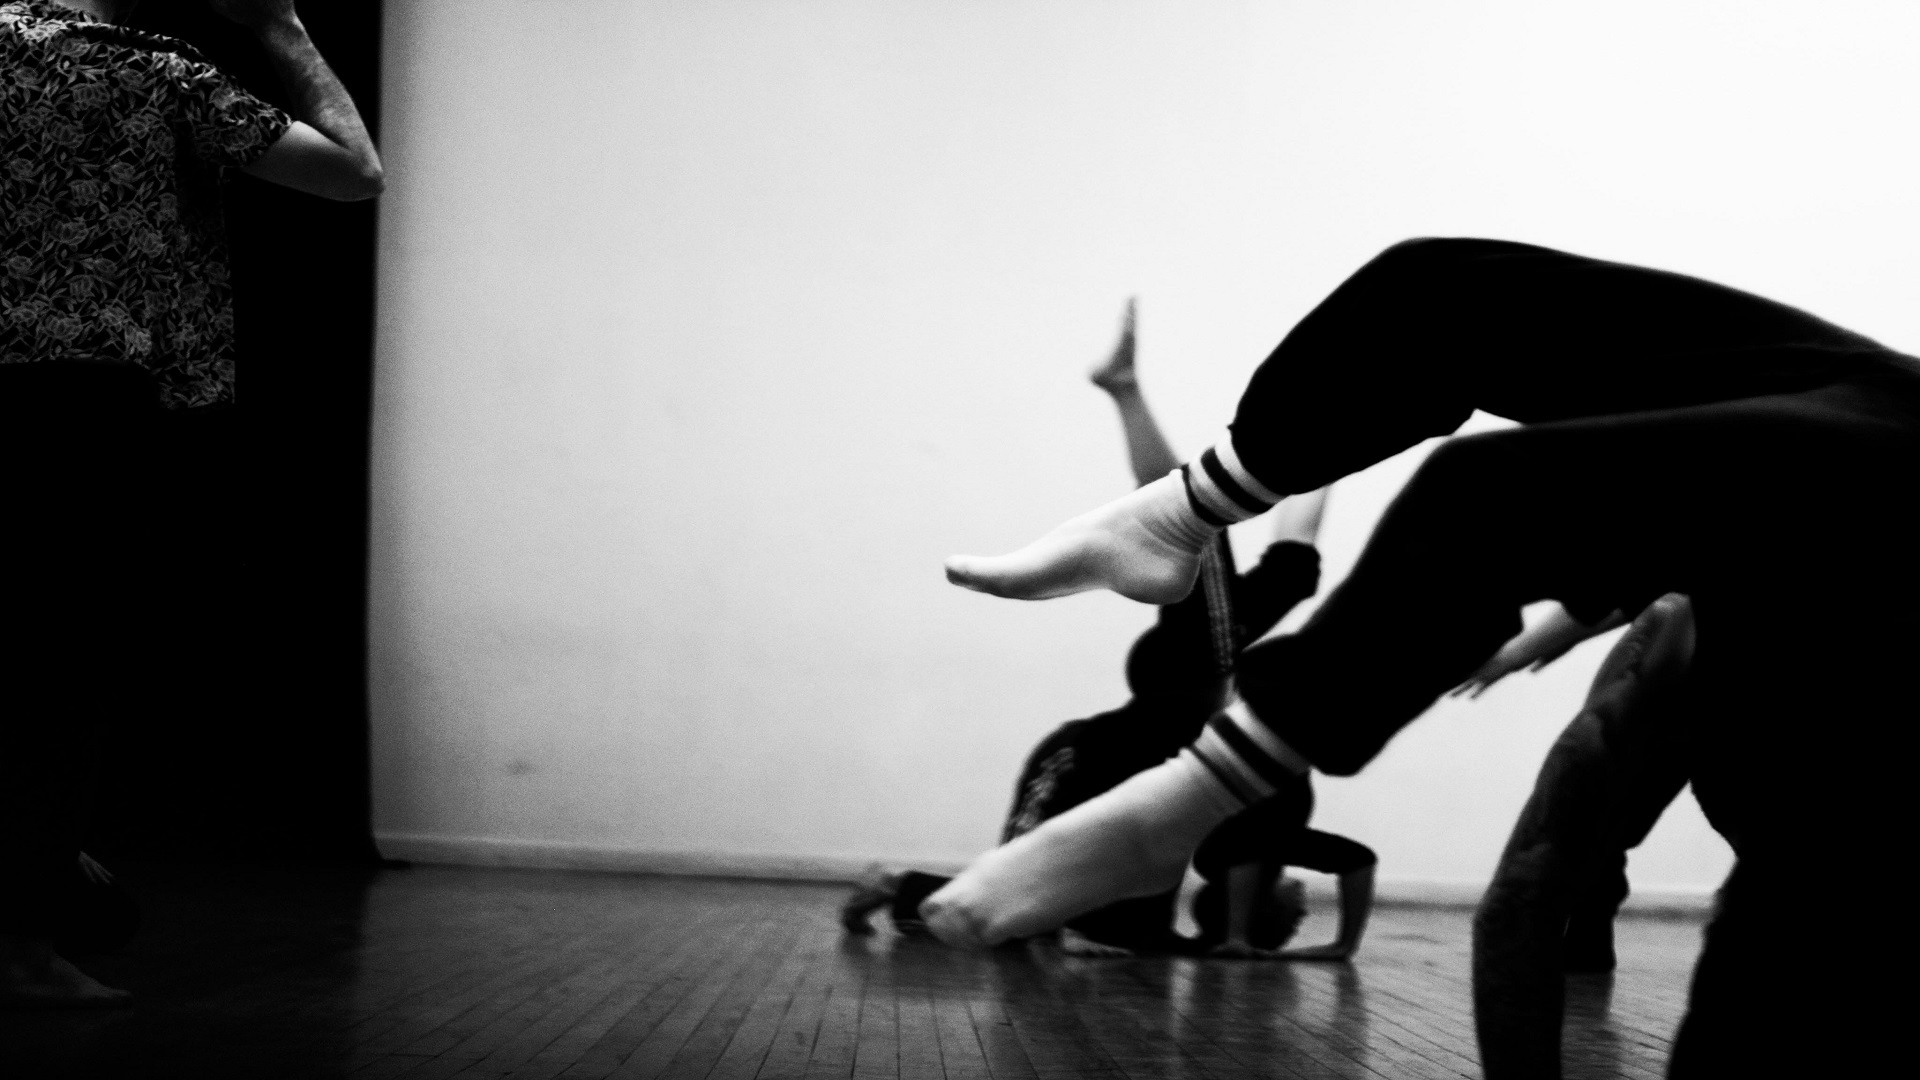 CONTACT IMPROVISATION: LIZZIE ROSENTHAL